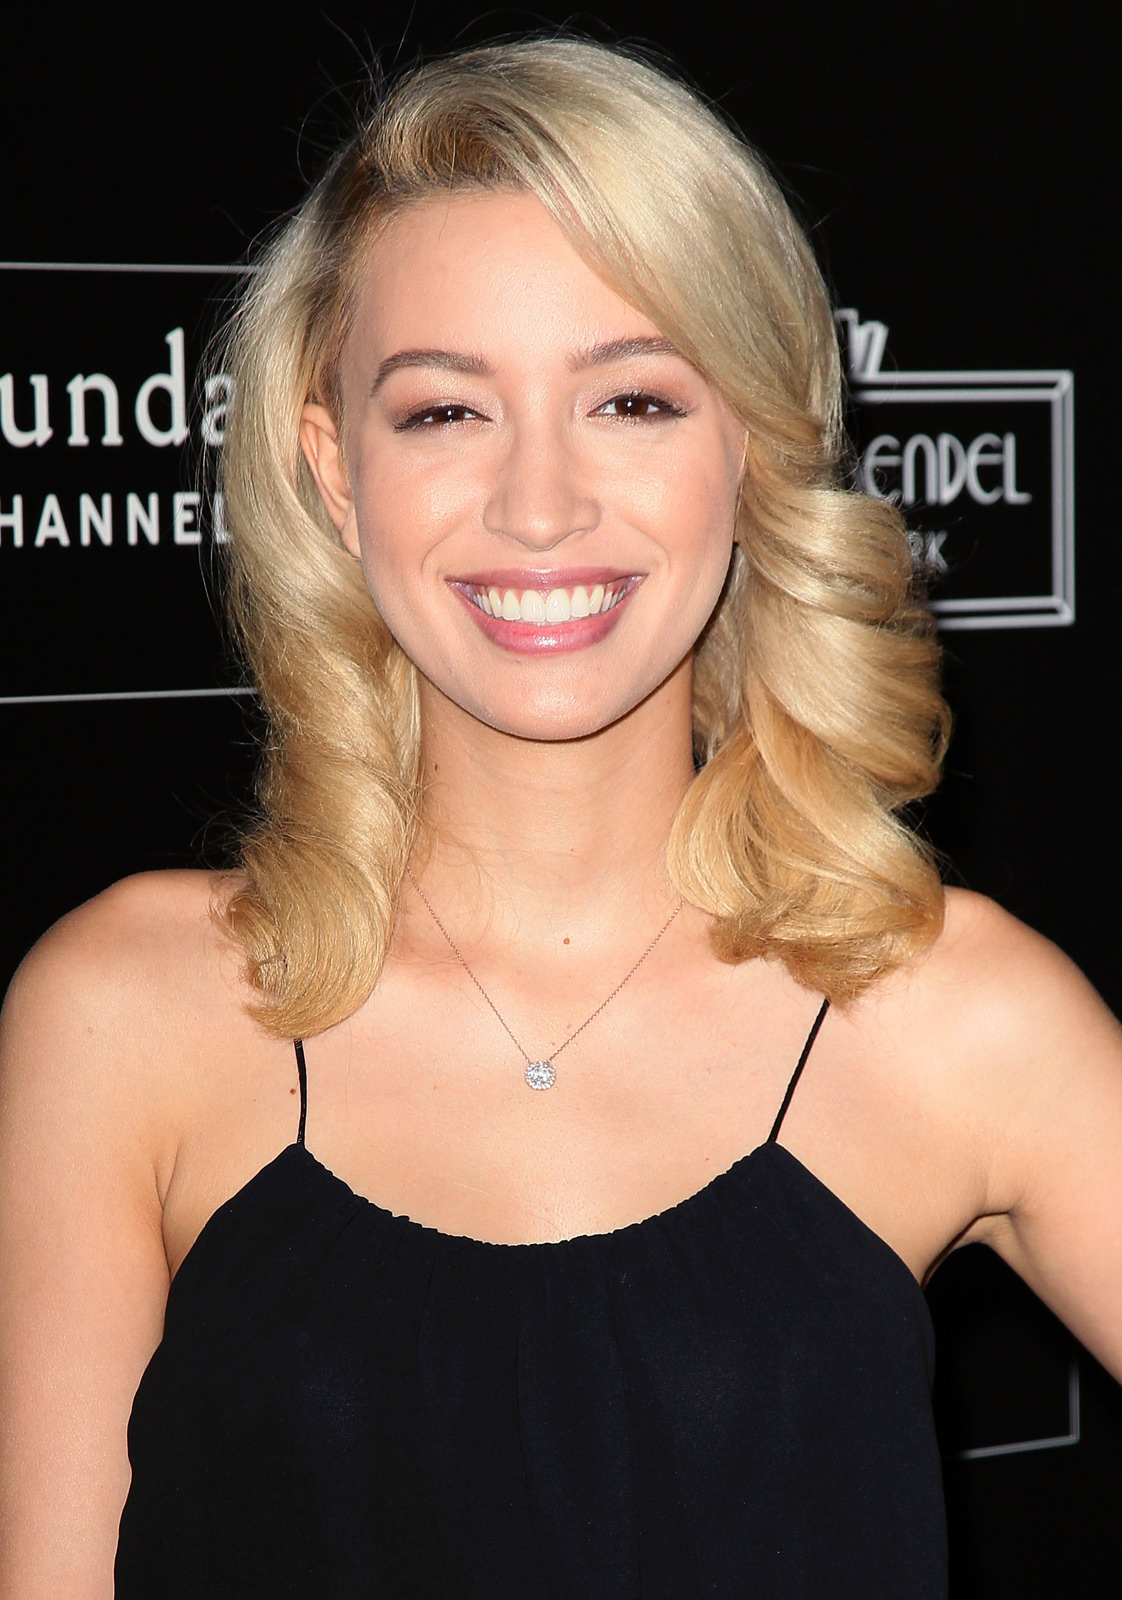 Christian Serratos Photo Gallery